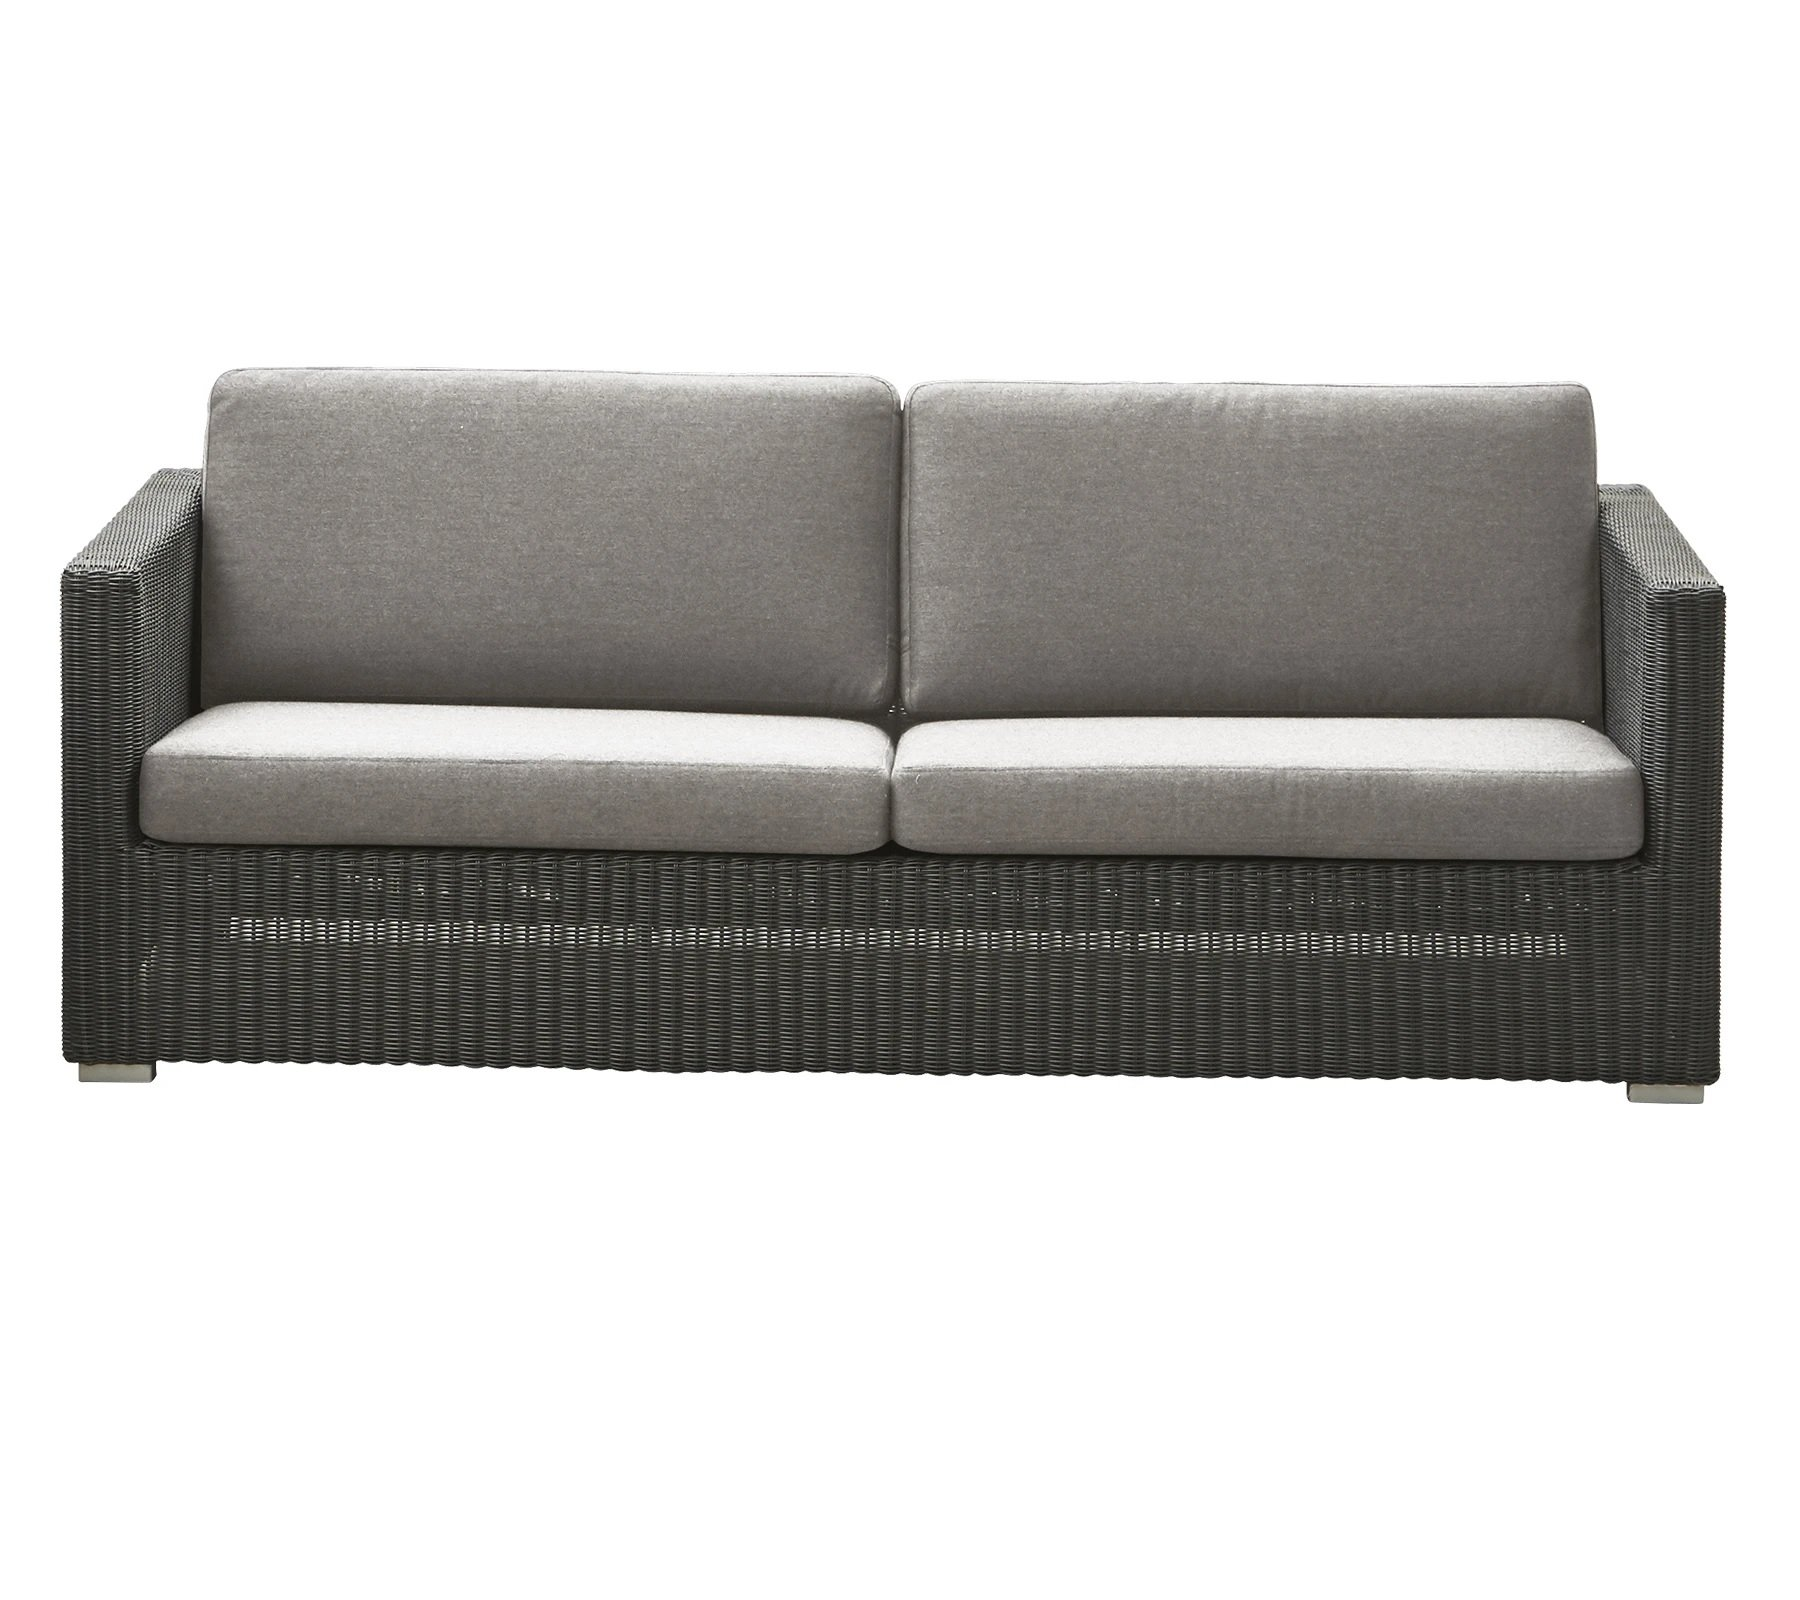 Chester 3-Seater Sofa from Cane-line, designed by Cane-line Design Team